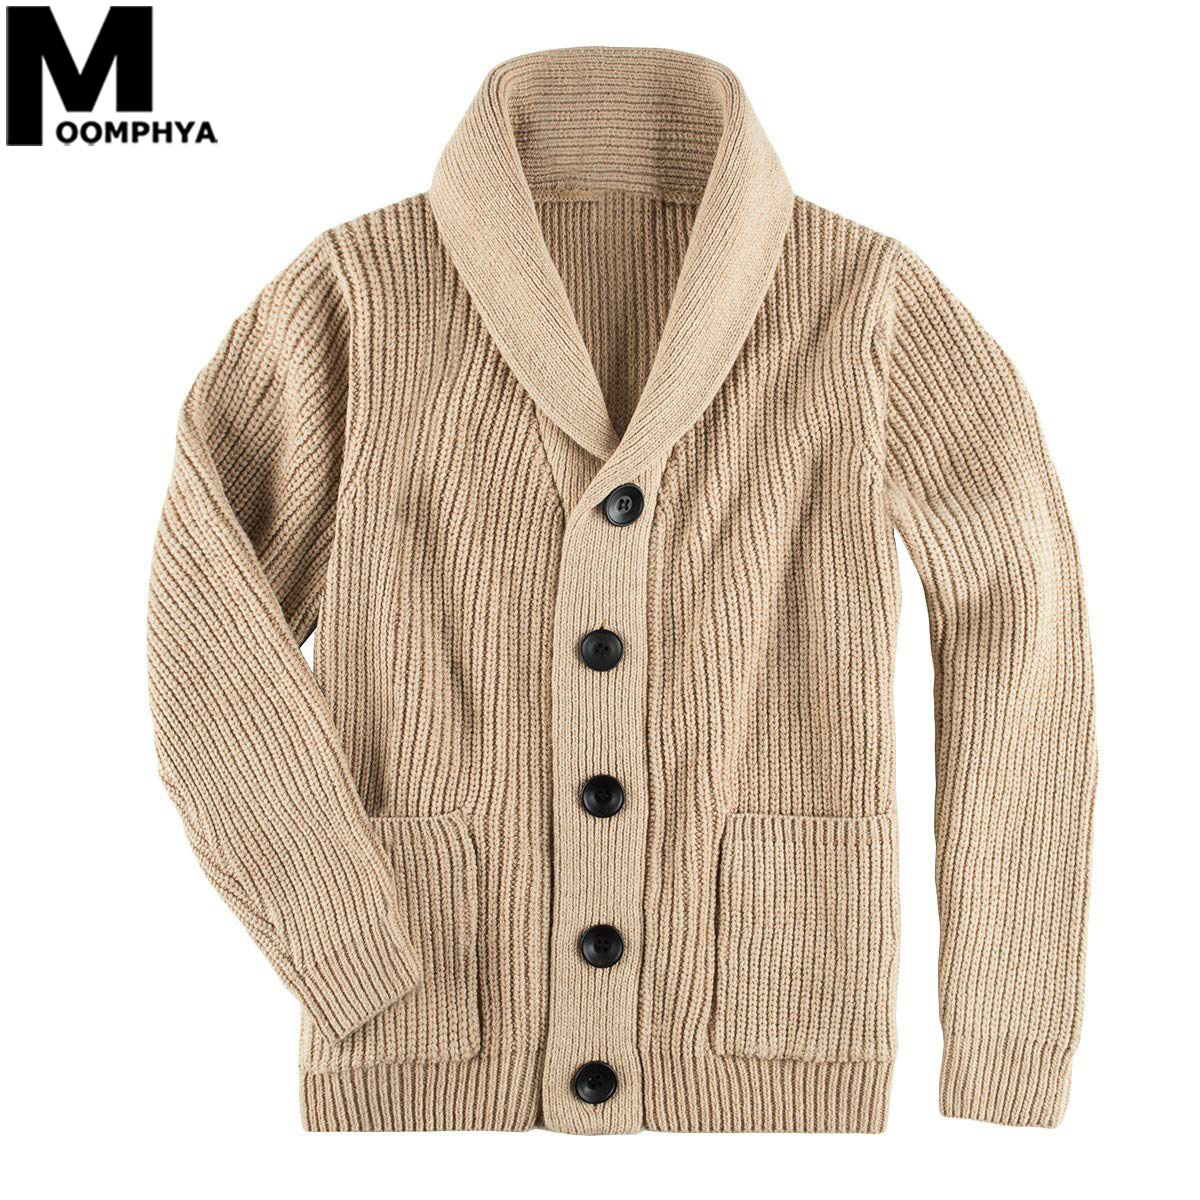 2020 Knitted Long Sleeve Men Sweater Coat Streetwear Jacquard Sweater Men Casual Turtleneck Cardigan Sweater Winter Sweater Men